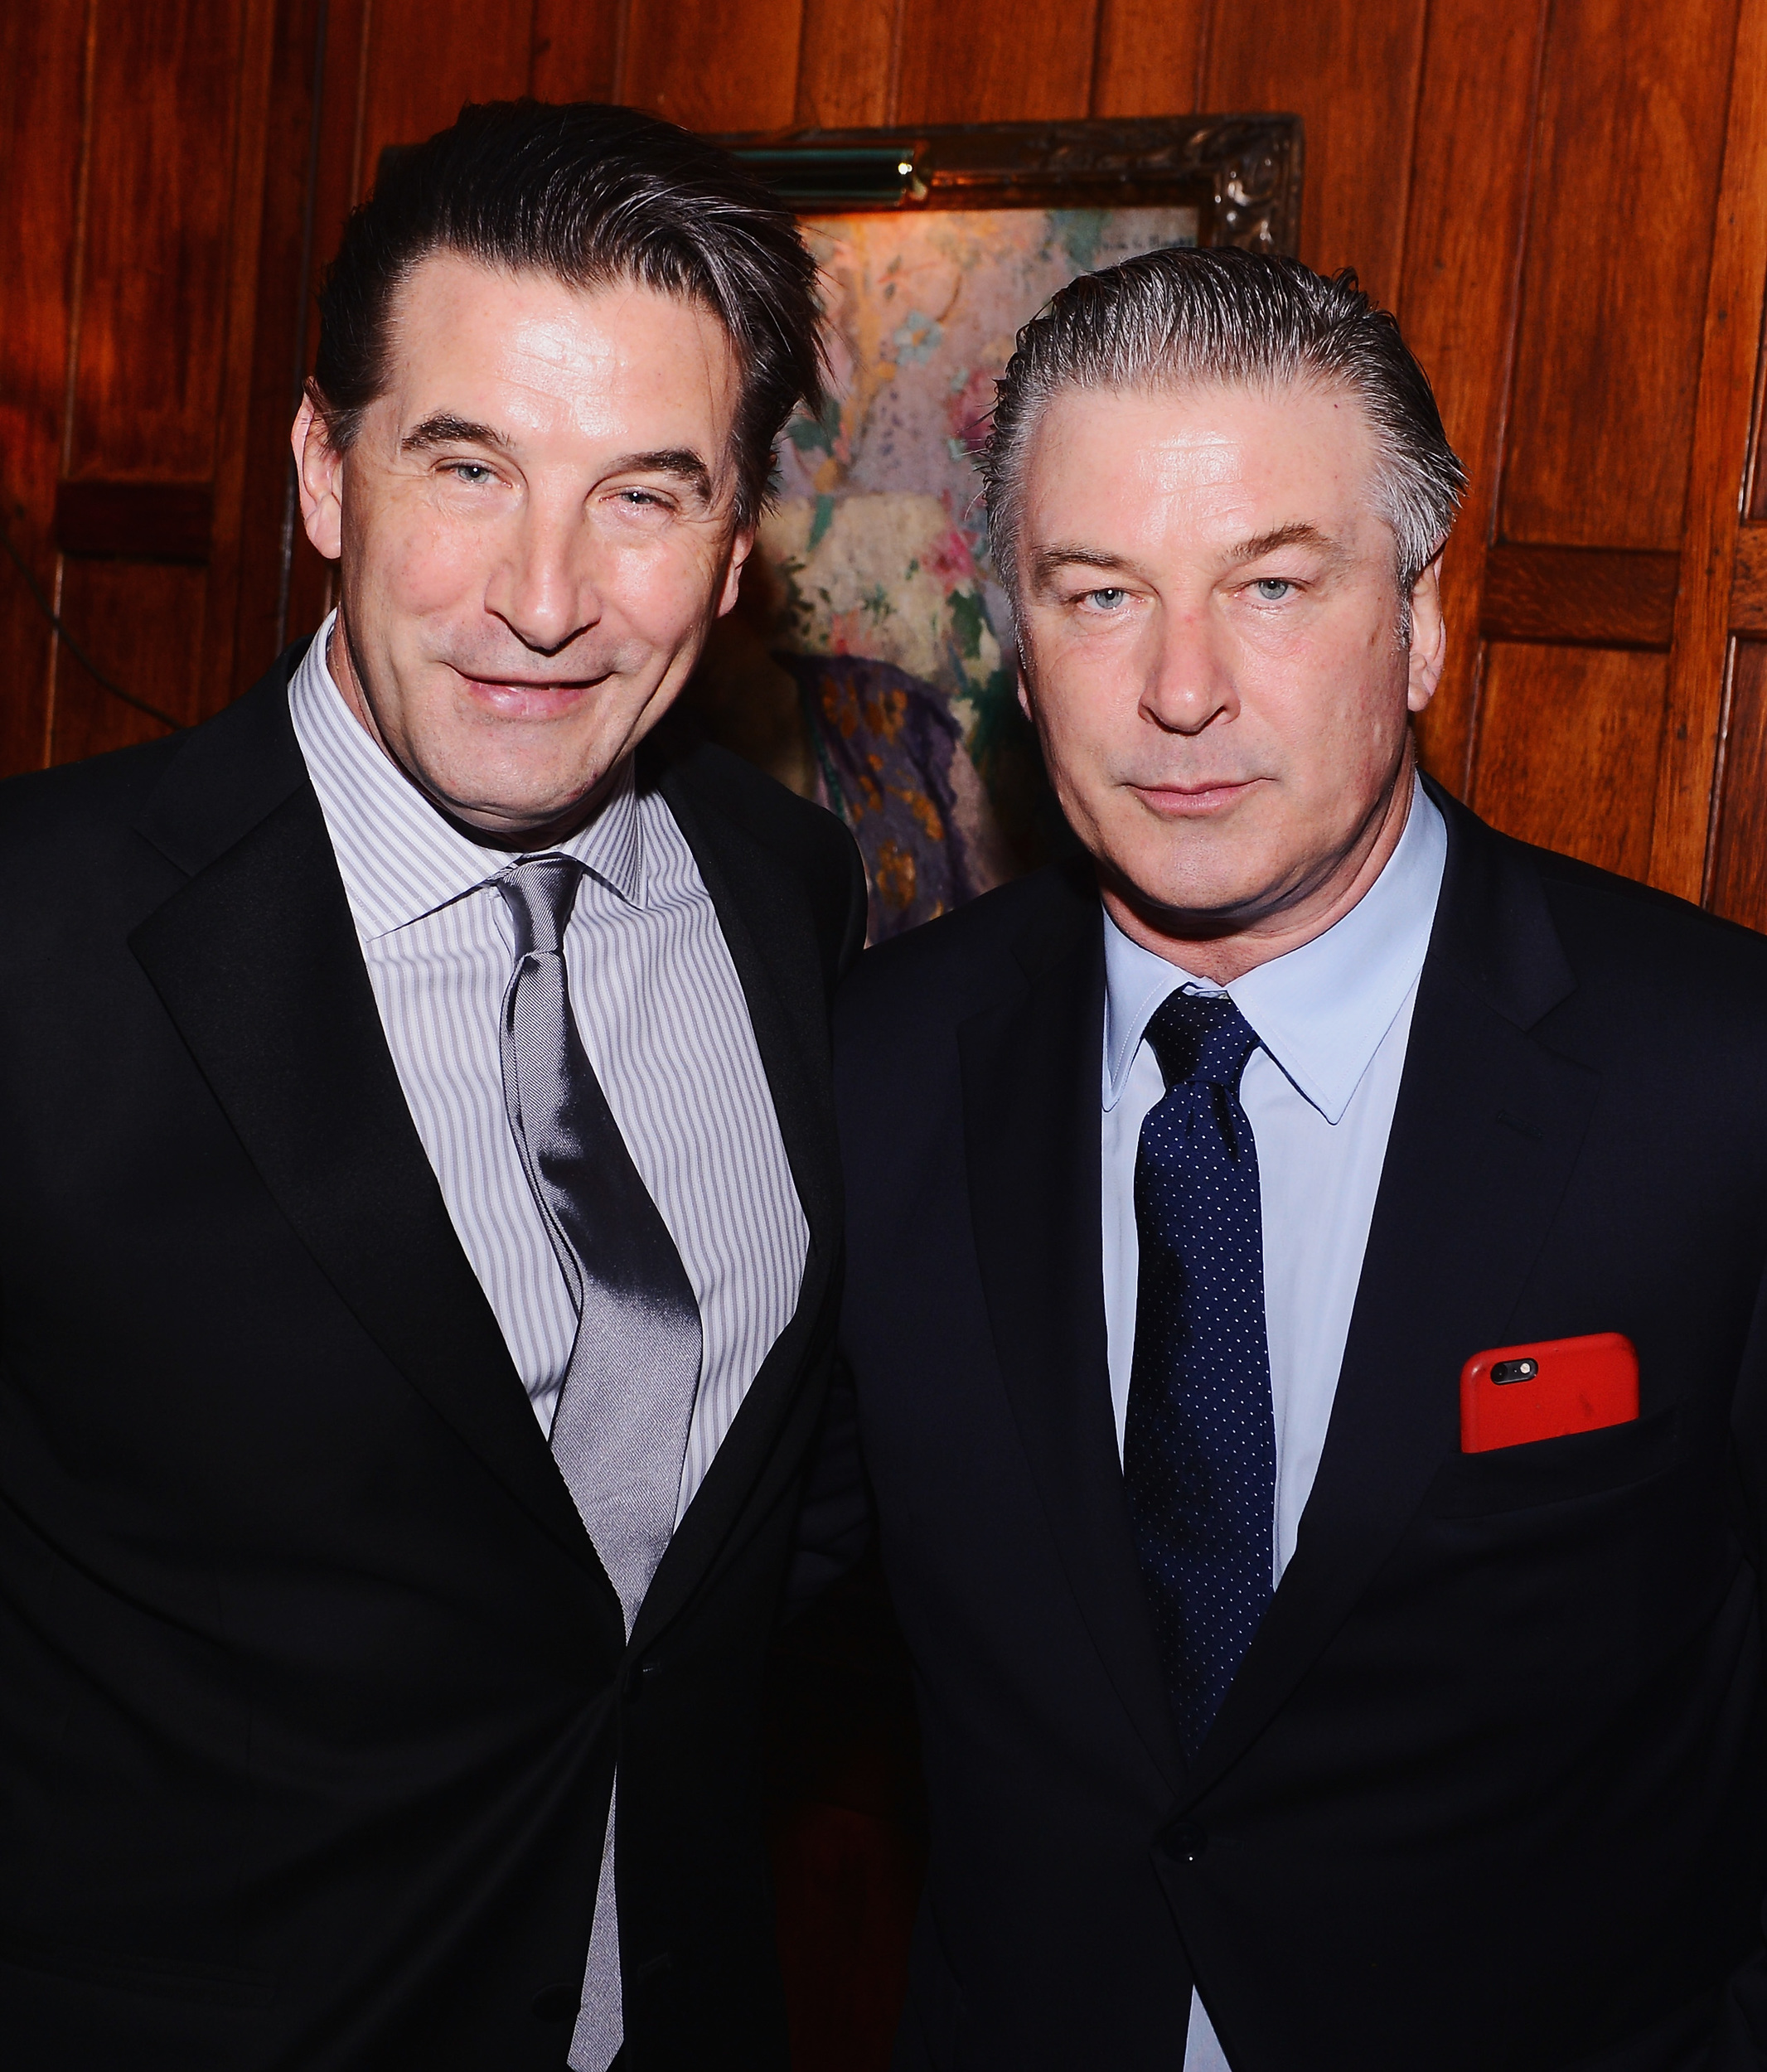 Alec Baldwin gives marriage advice to newlyweds Hailey Baldwin and Justin Bieber